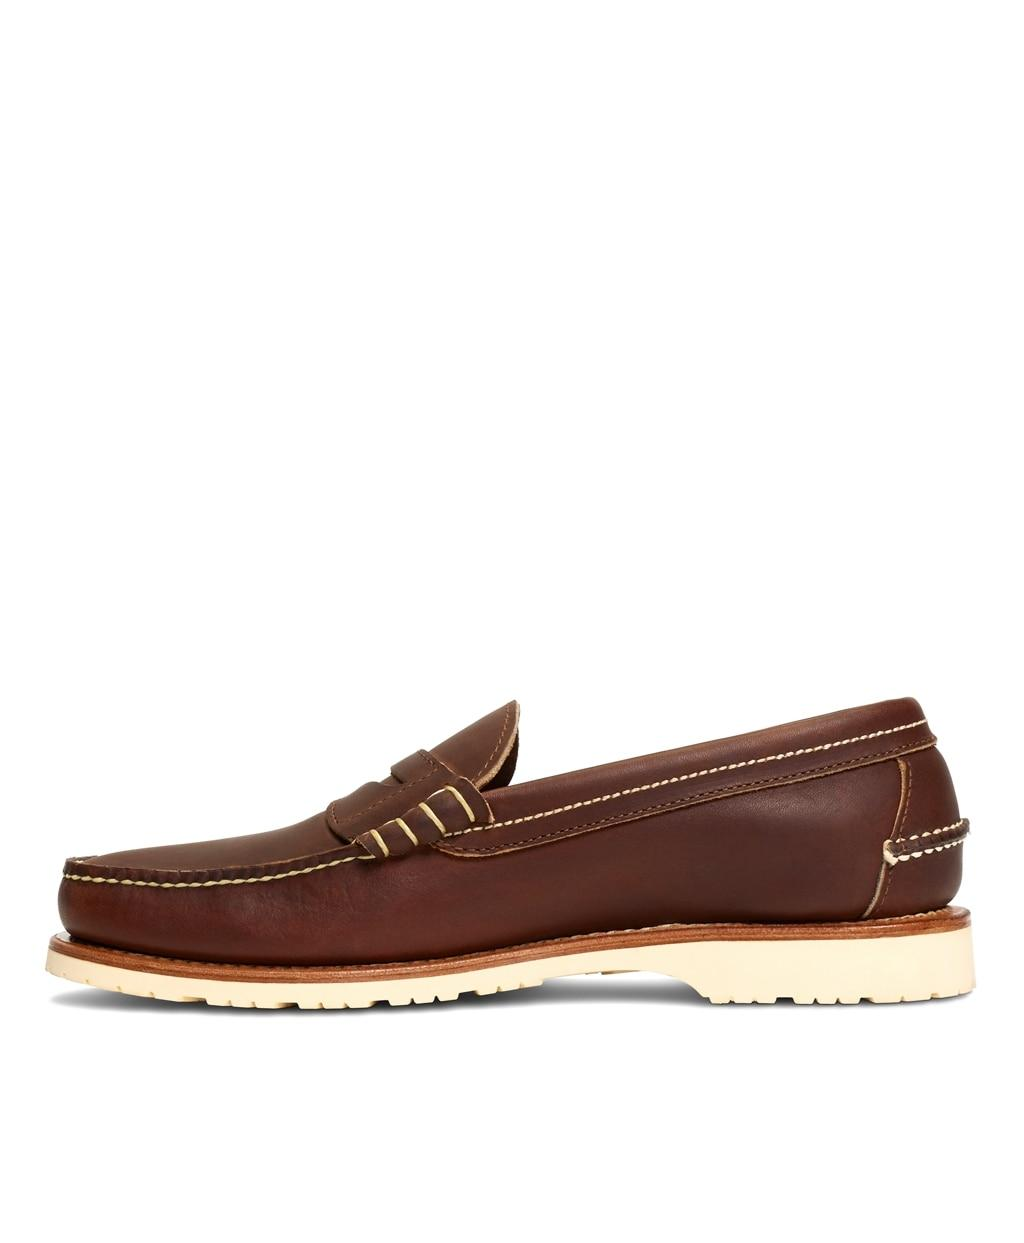 Brooks Brothers Red Wing Amber Mini Lug Penny Loafers in ...